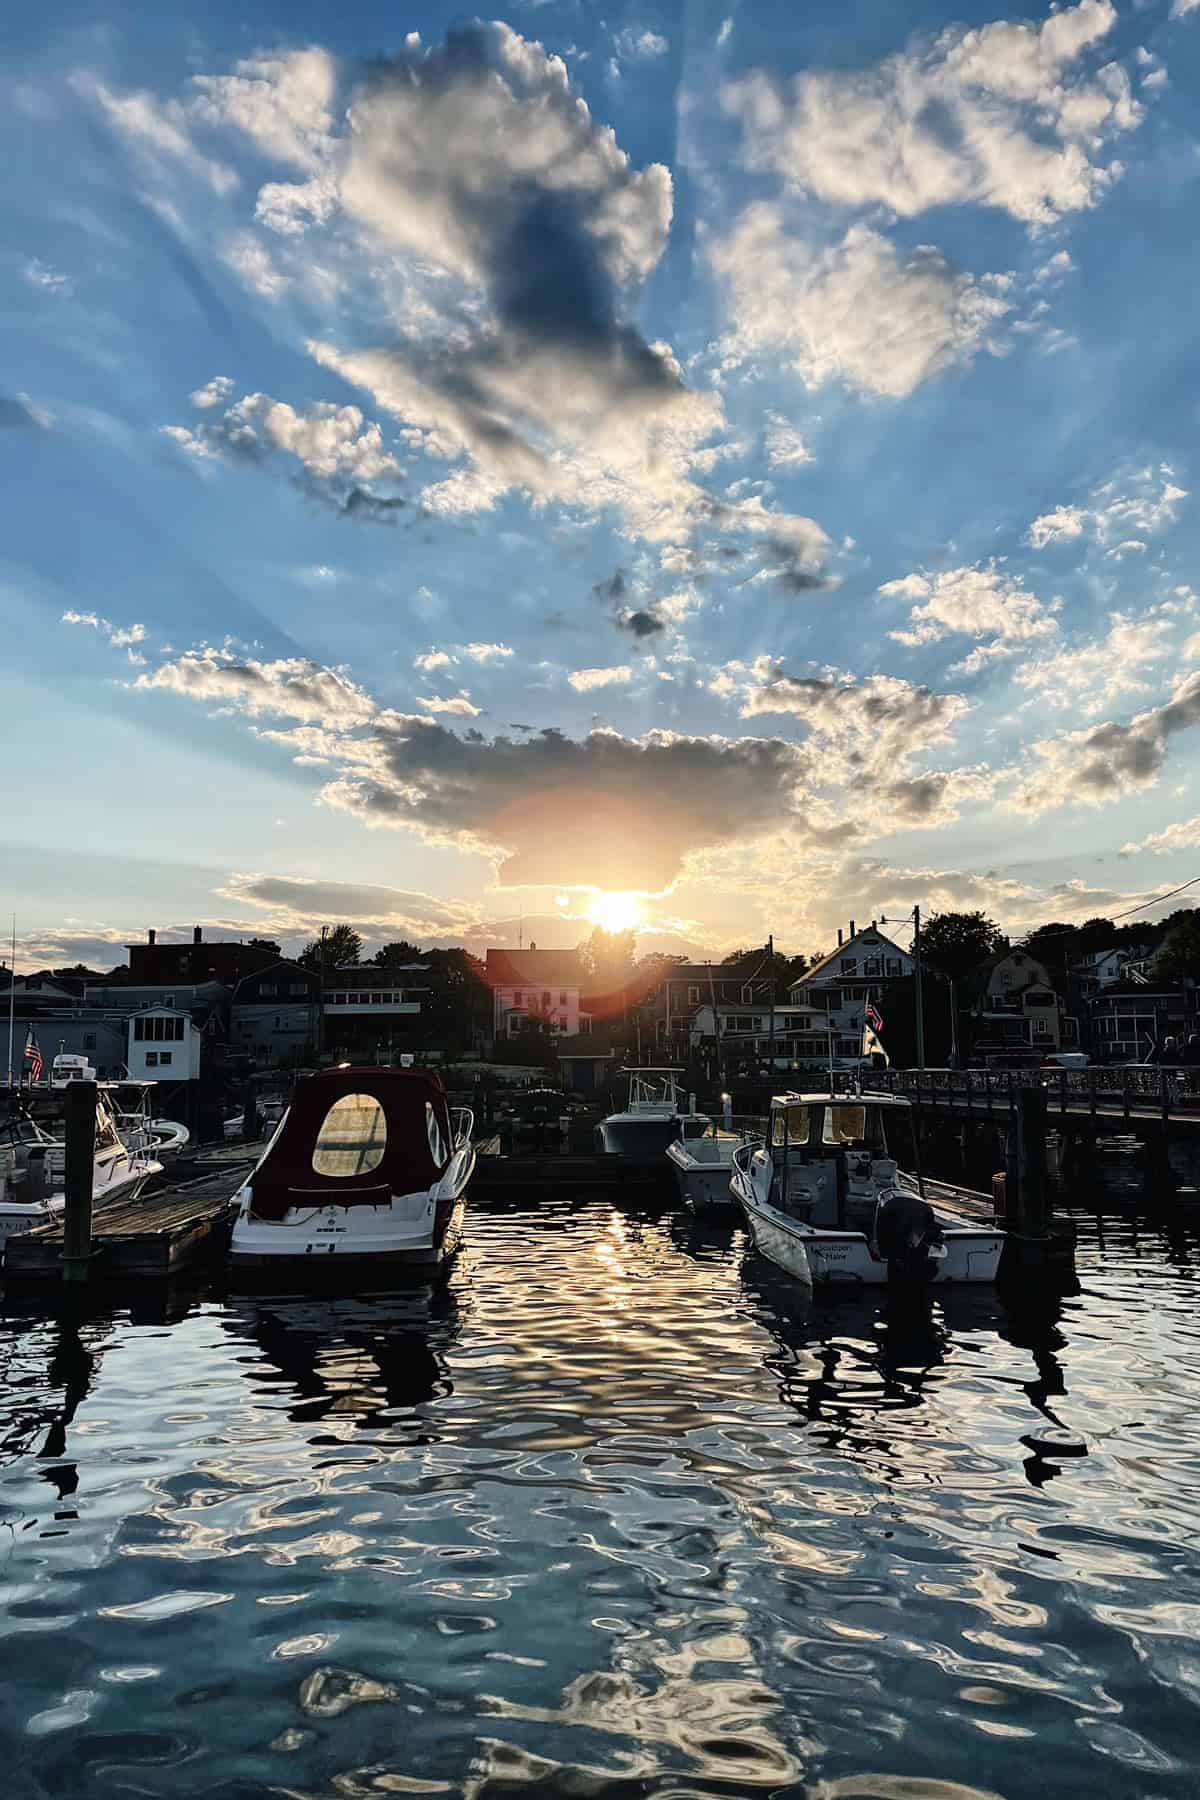 Waterfront with boats in Boothbay Harbor